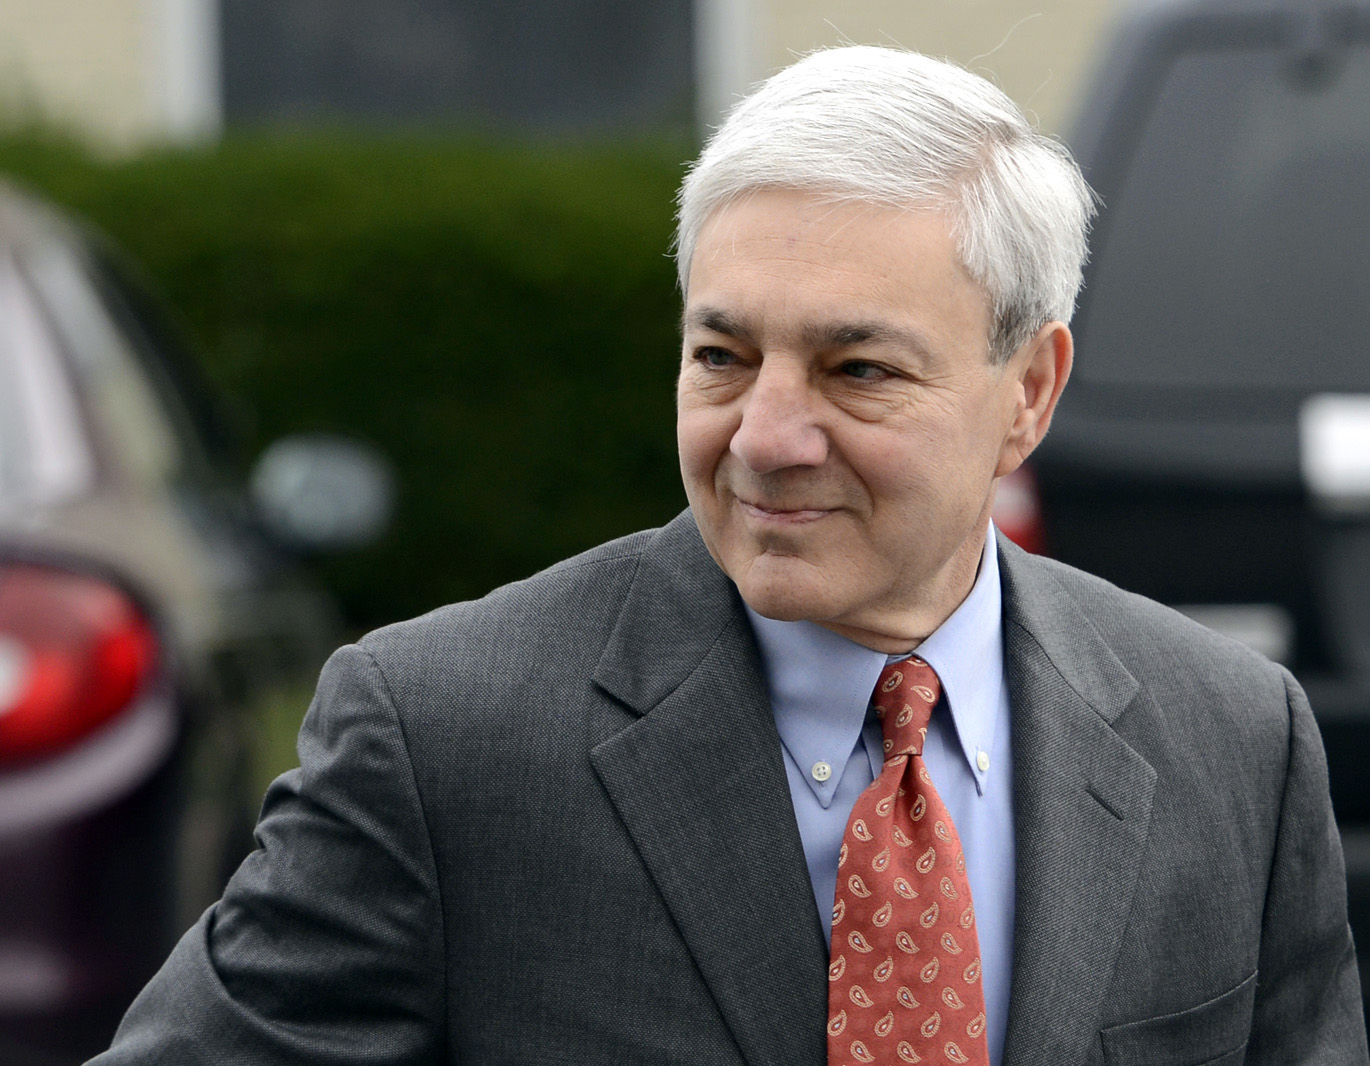 FILE - In this Nov. 7, 2012, file photo, former Penn State president Graham Spanier enters Harrisburg District court in Harrisburg, Pa., to be arraigned on charges he lied about and concealed child sex abuse allegations involving former assistant football